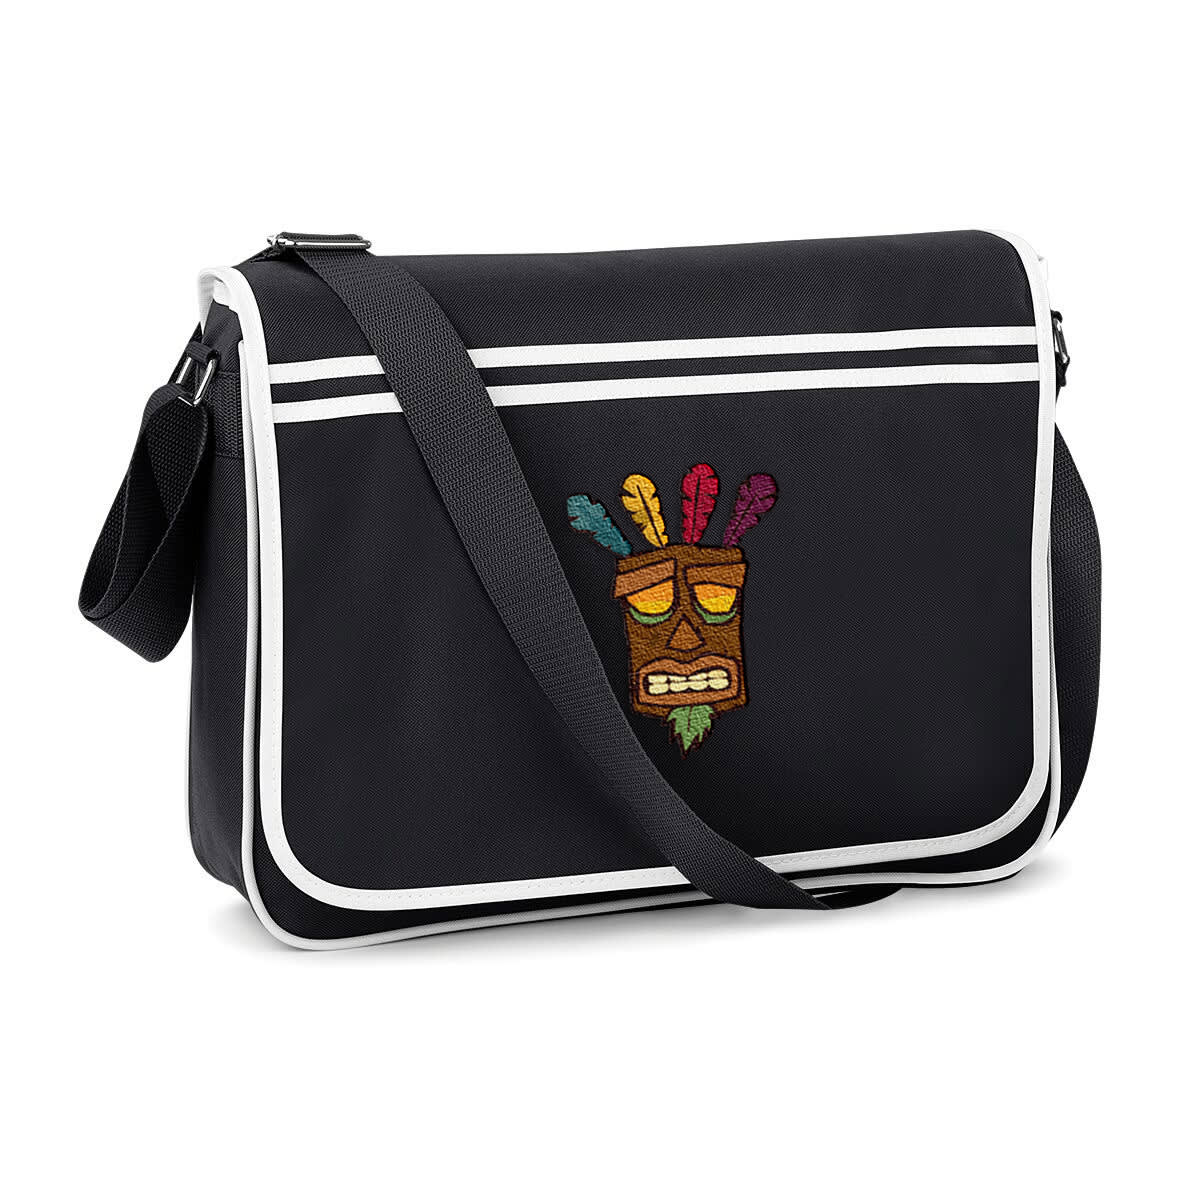 Aku Aku Messenger Bag